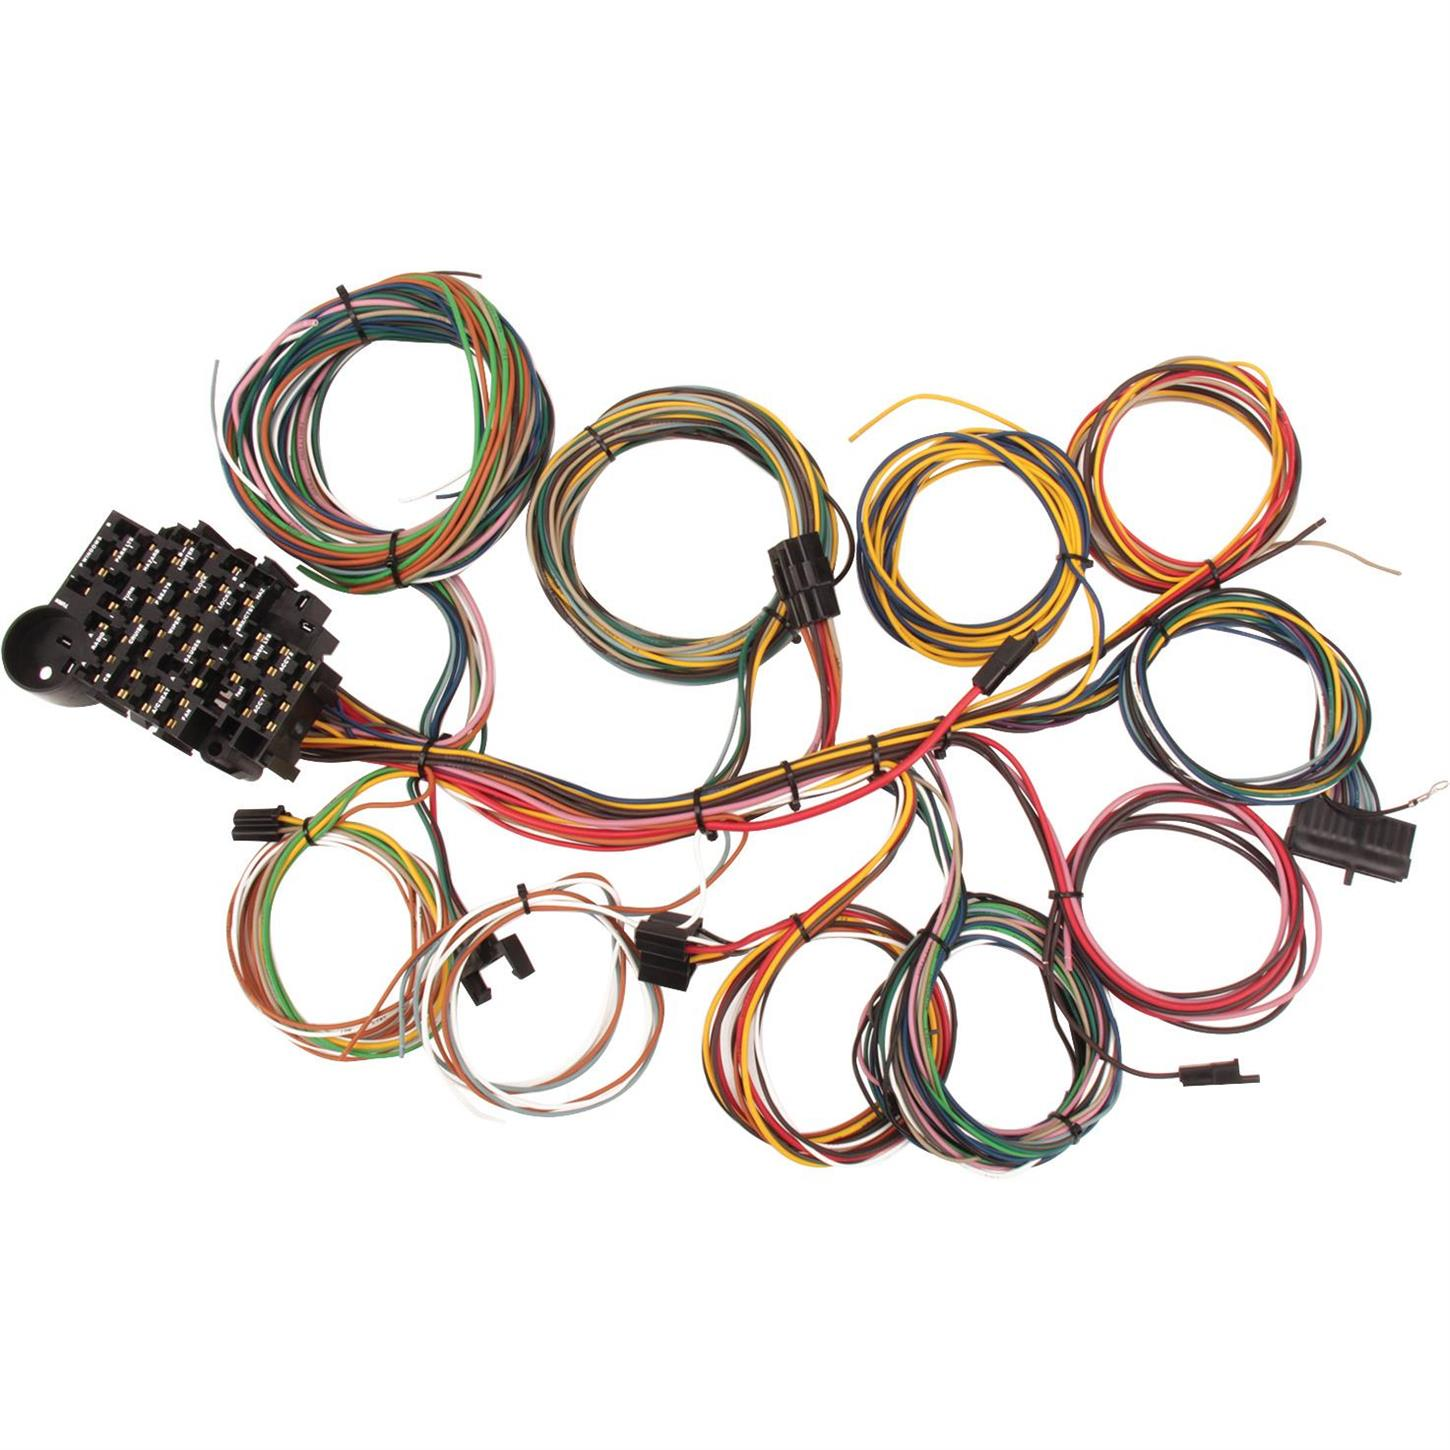 91064022_L1450_4a5a9e43 cdd2 4b2c 9c68 457f296054bd selecting a wiring harness for your street rod  at panicattacktreatment.co